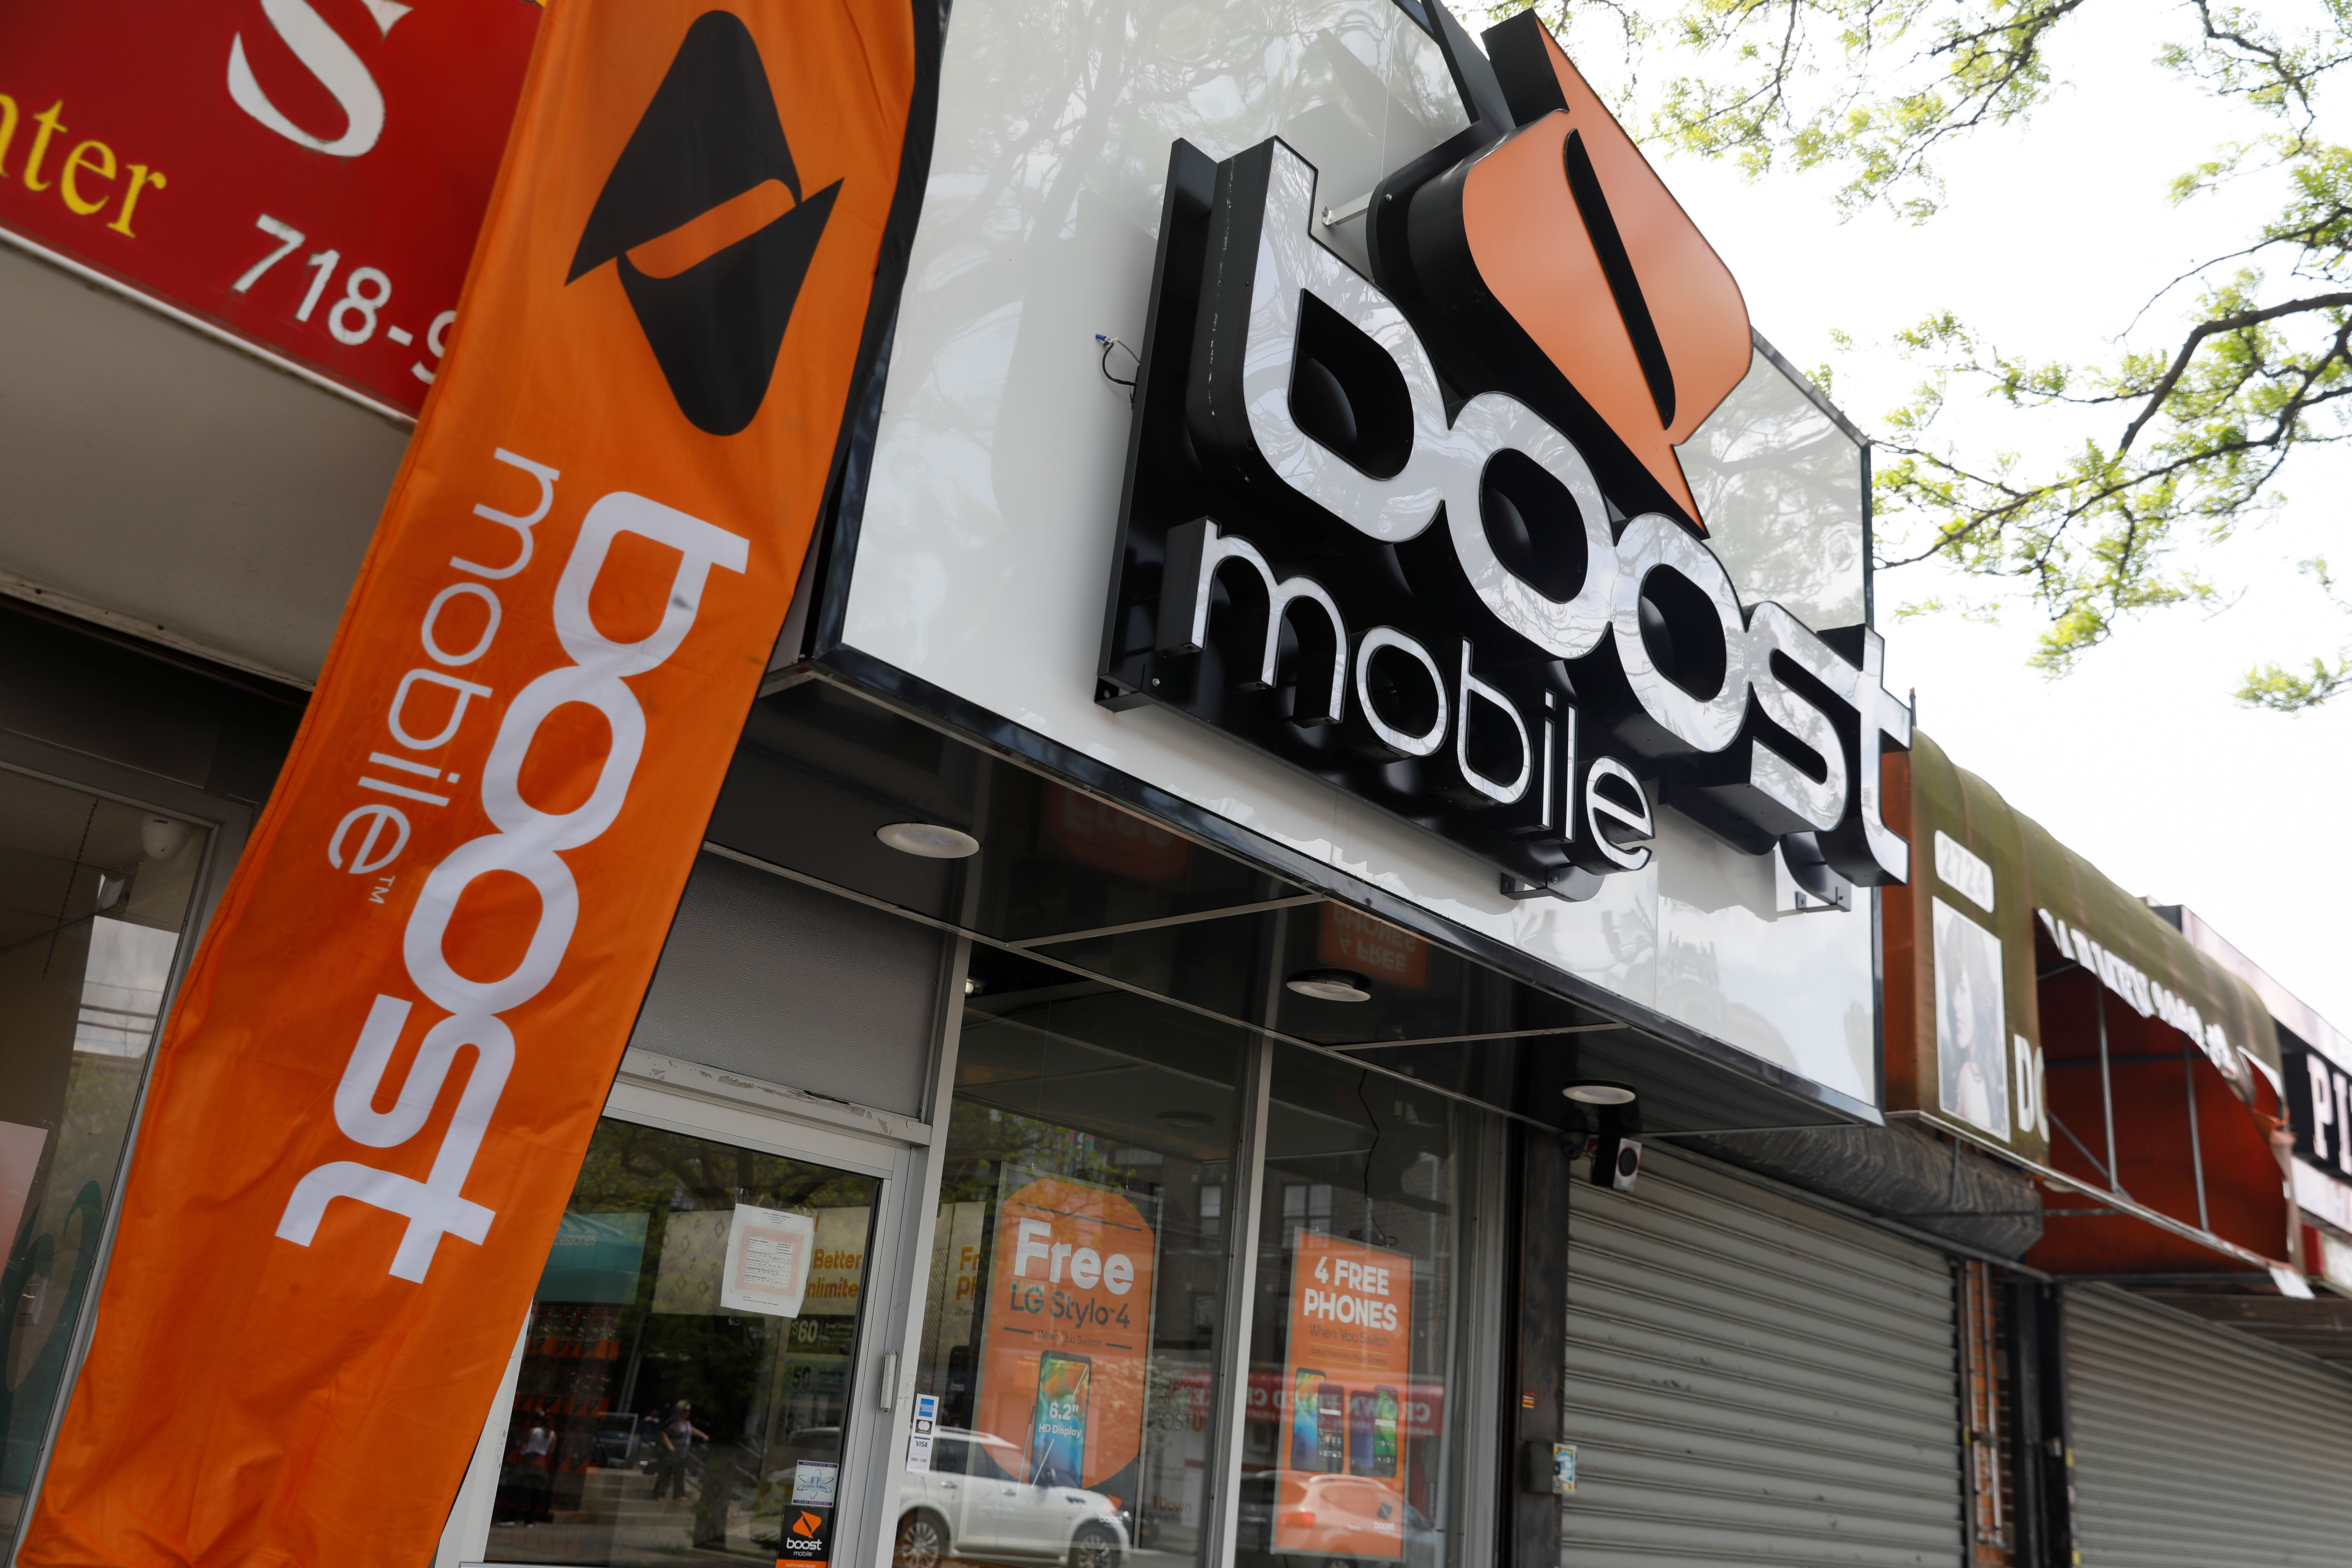 Boost Mobile founder would buy back if terms OK from Sprint-T-Mobile